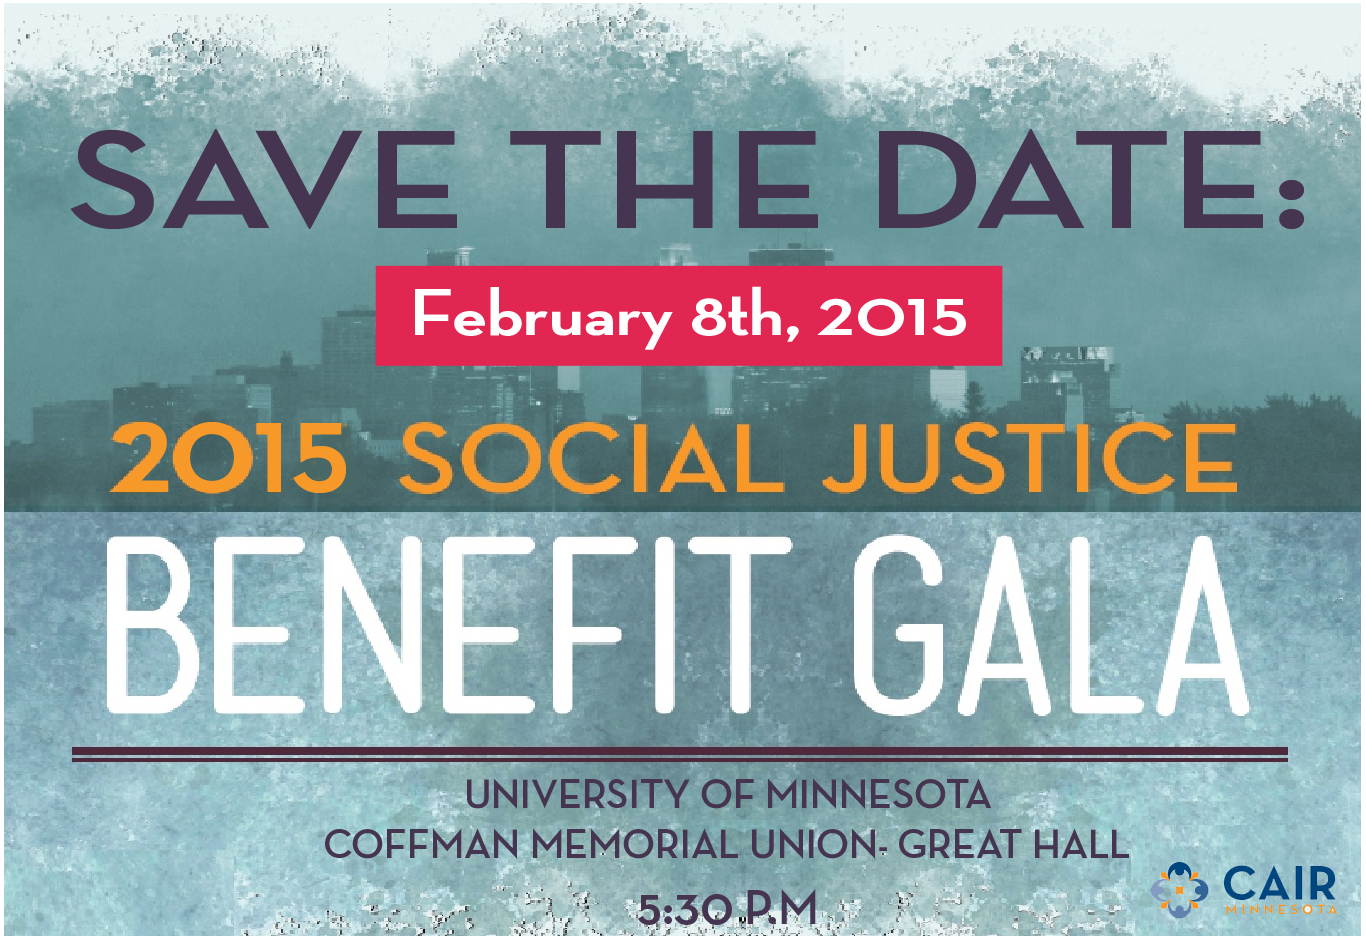 Save the Date! CAIR-MN Benefit Gala for Social Justice!